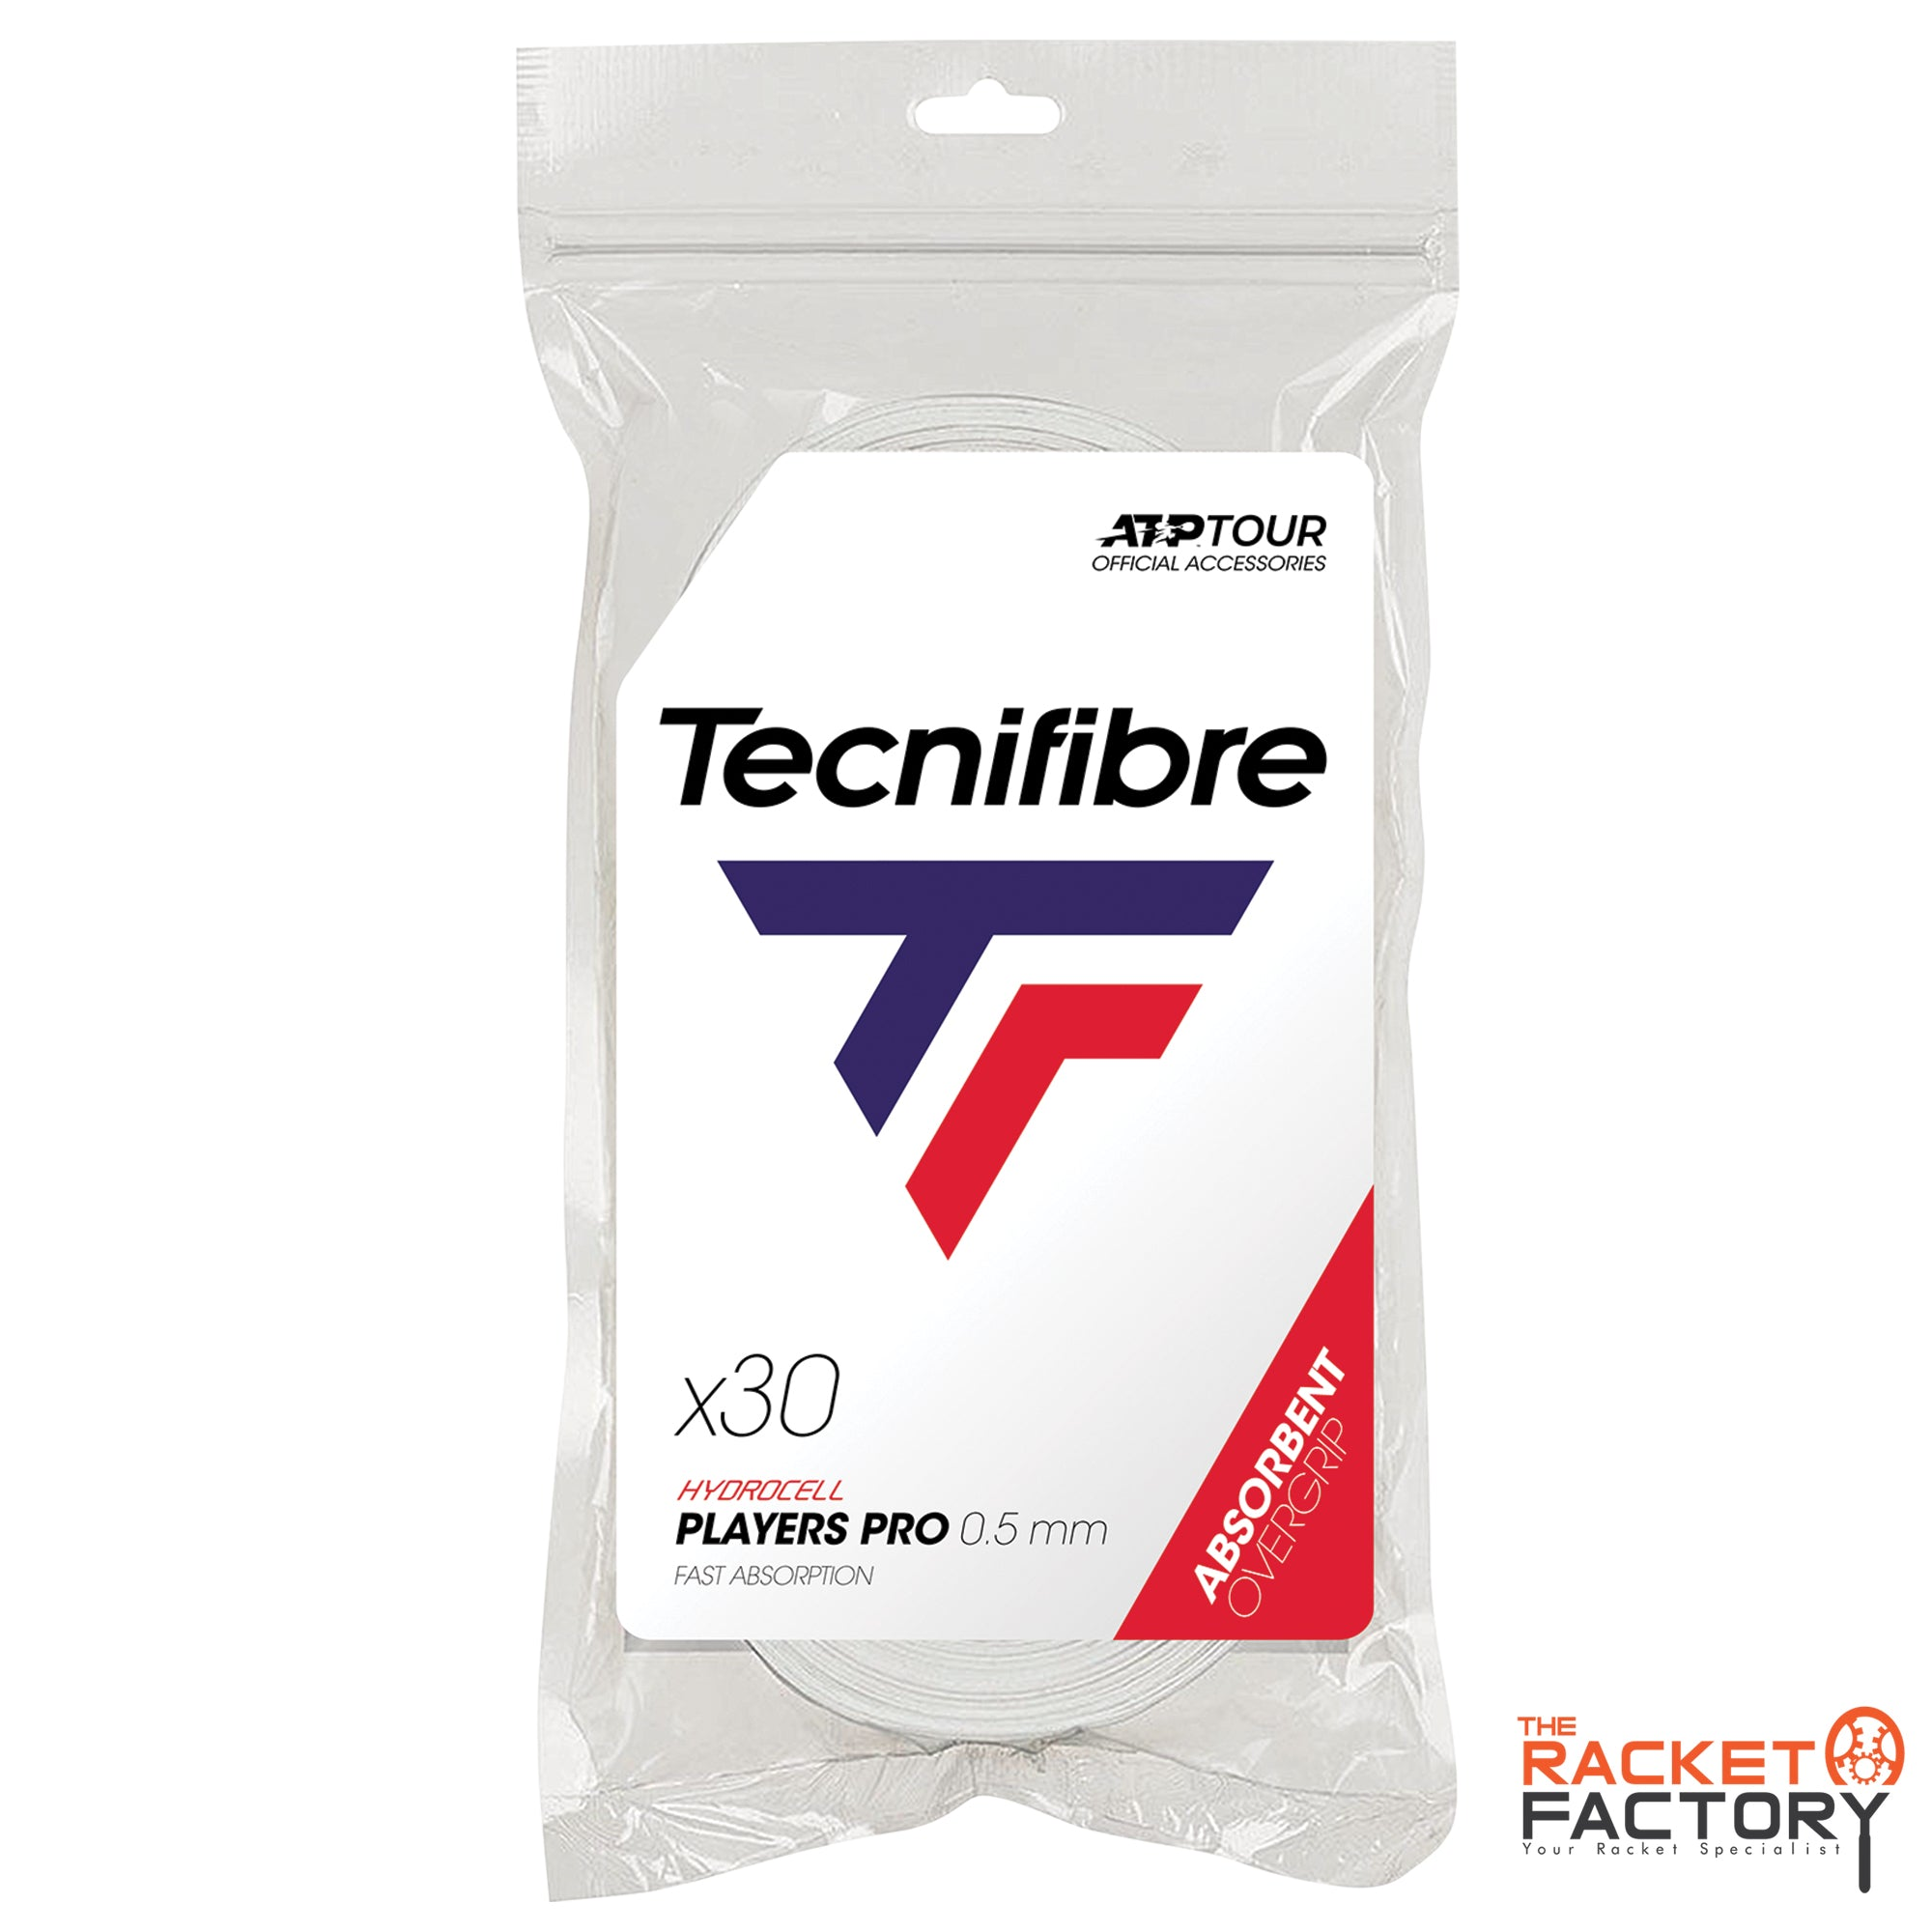 Tecnifibre ATP Contact Pro Over Grip - Pack of 30